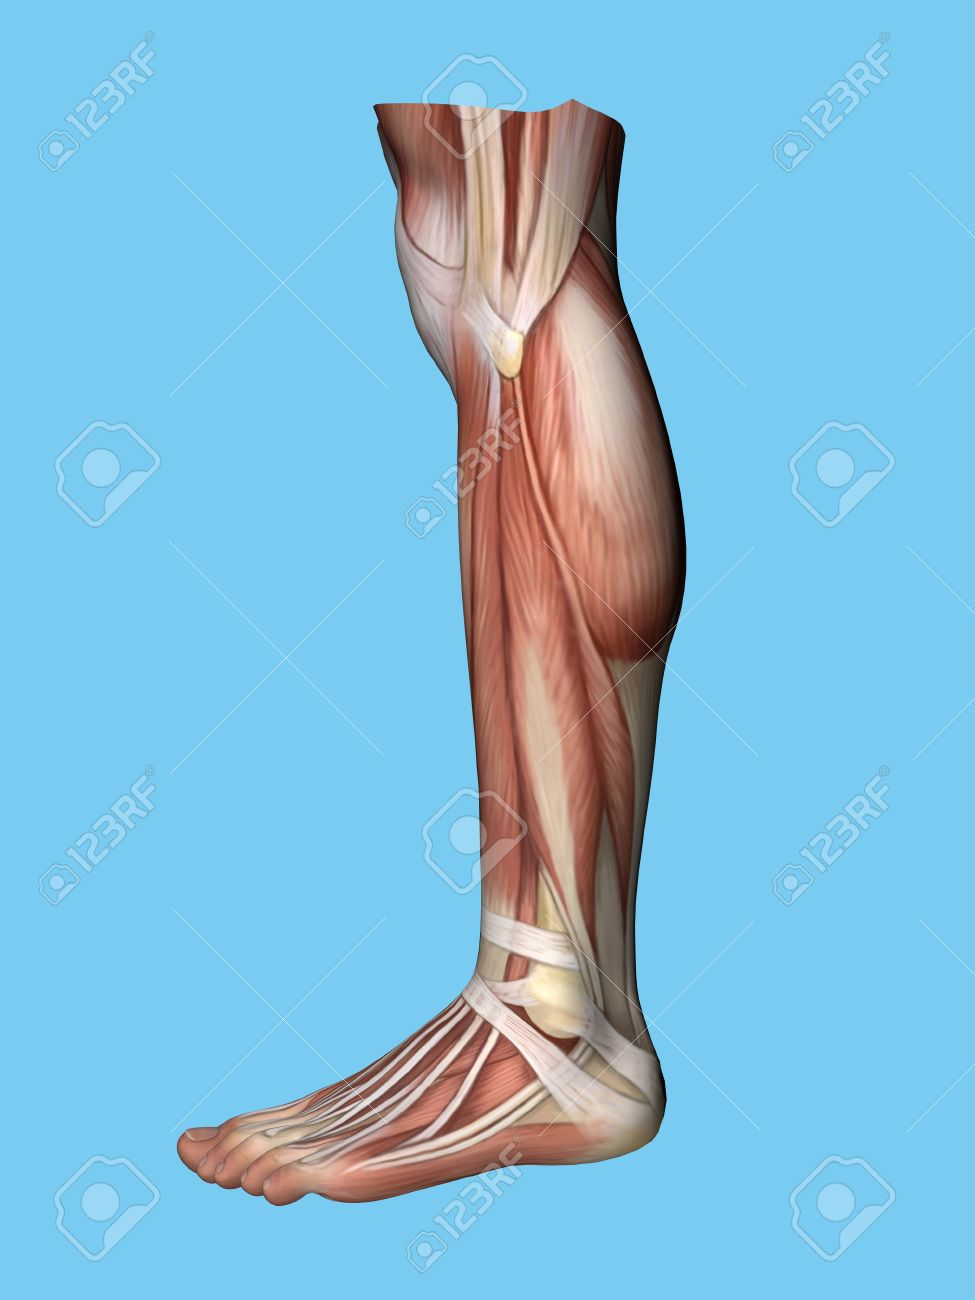 Anatomy Lateral Side View Of Leg And Foot Of A Man Including Stock